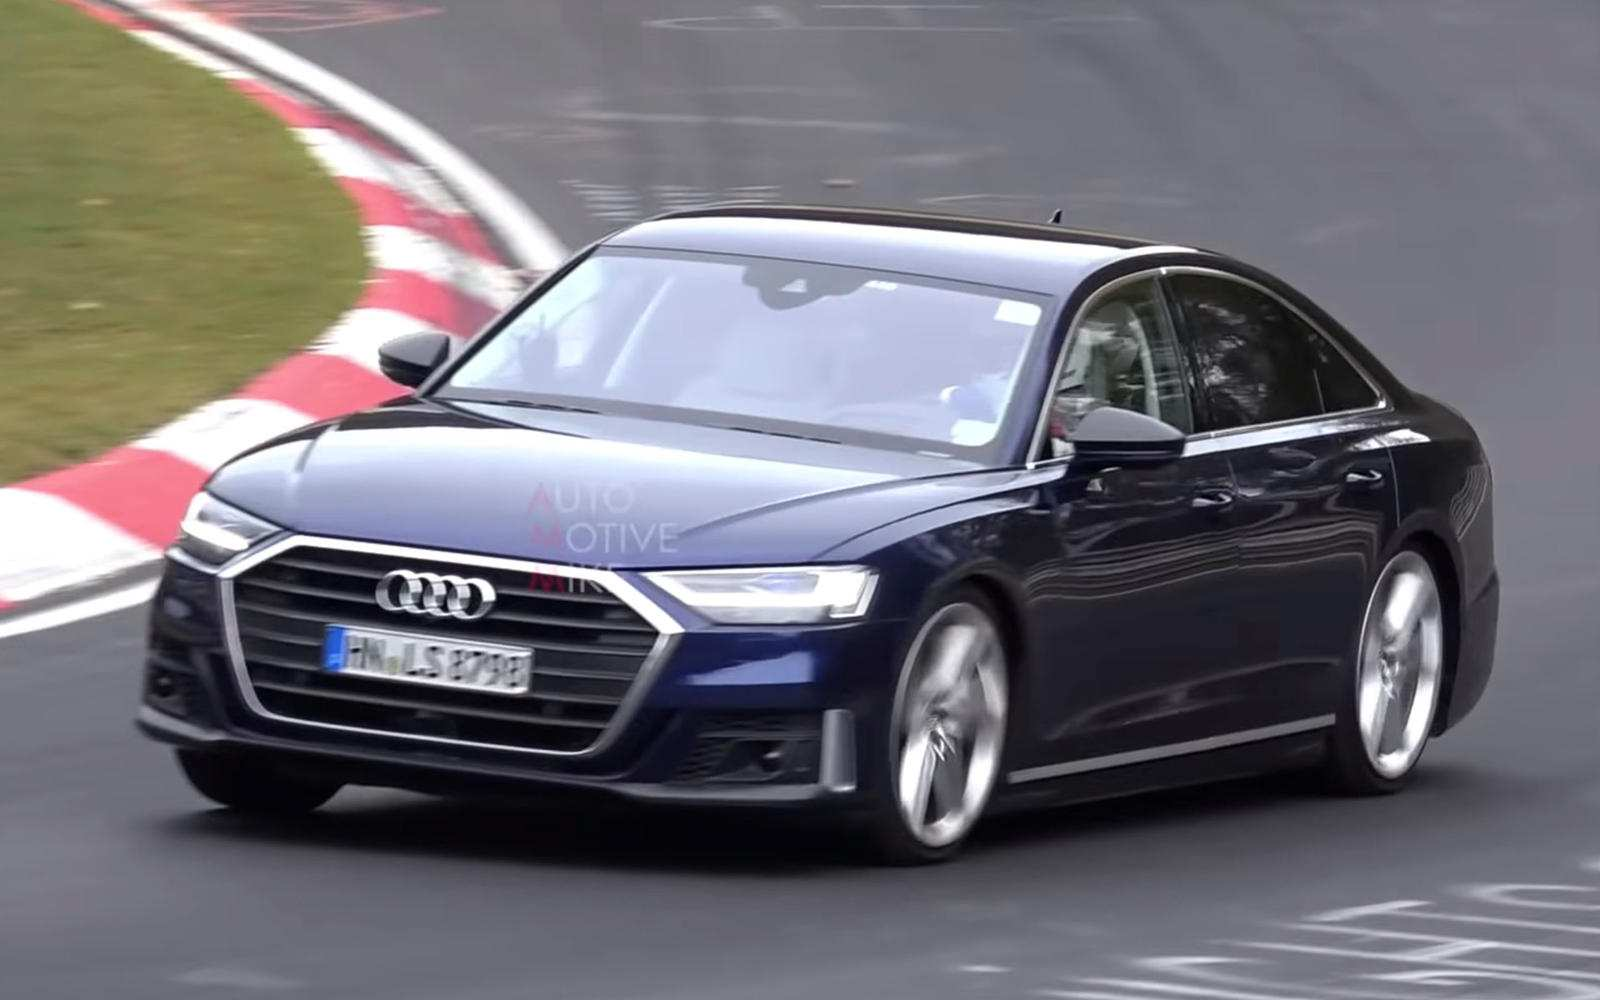 86 All New 2020 Audi A8 Price Design And Review